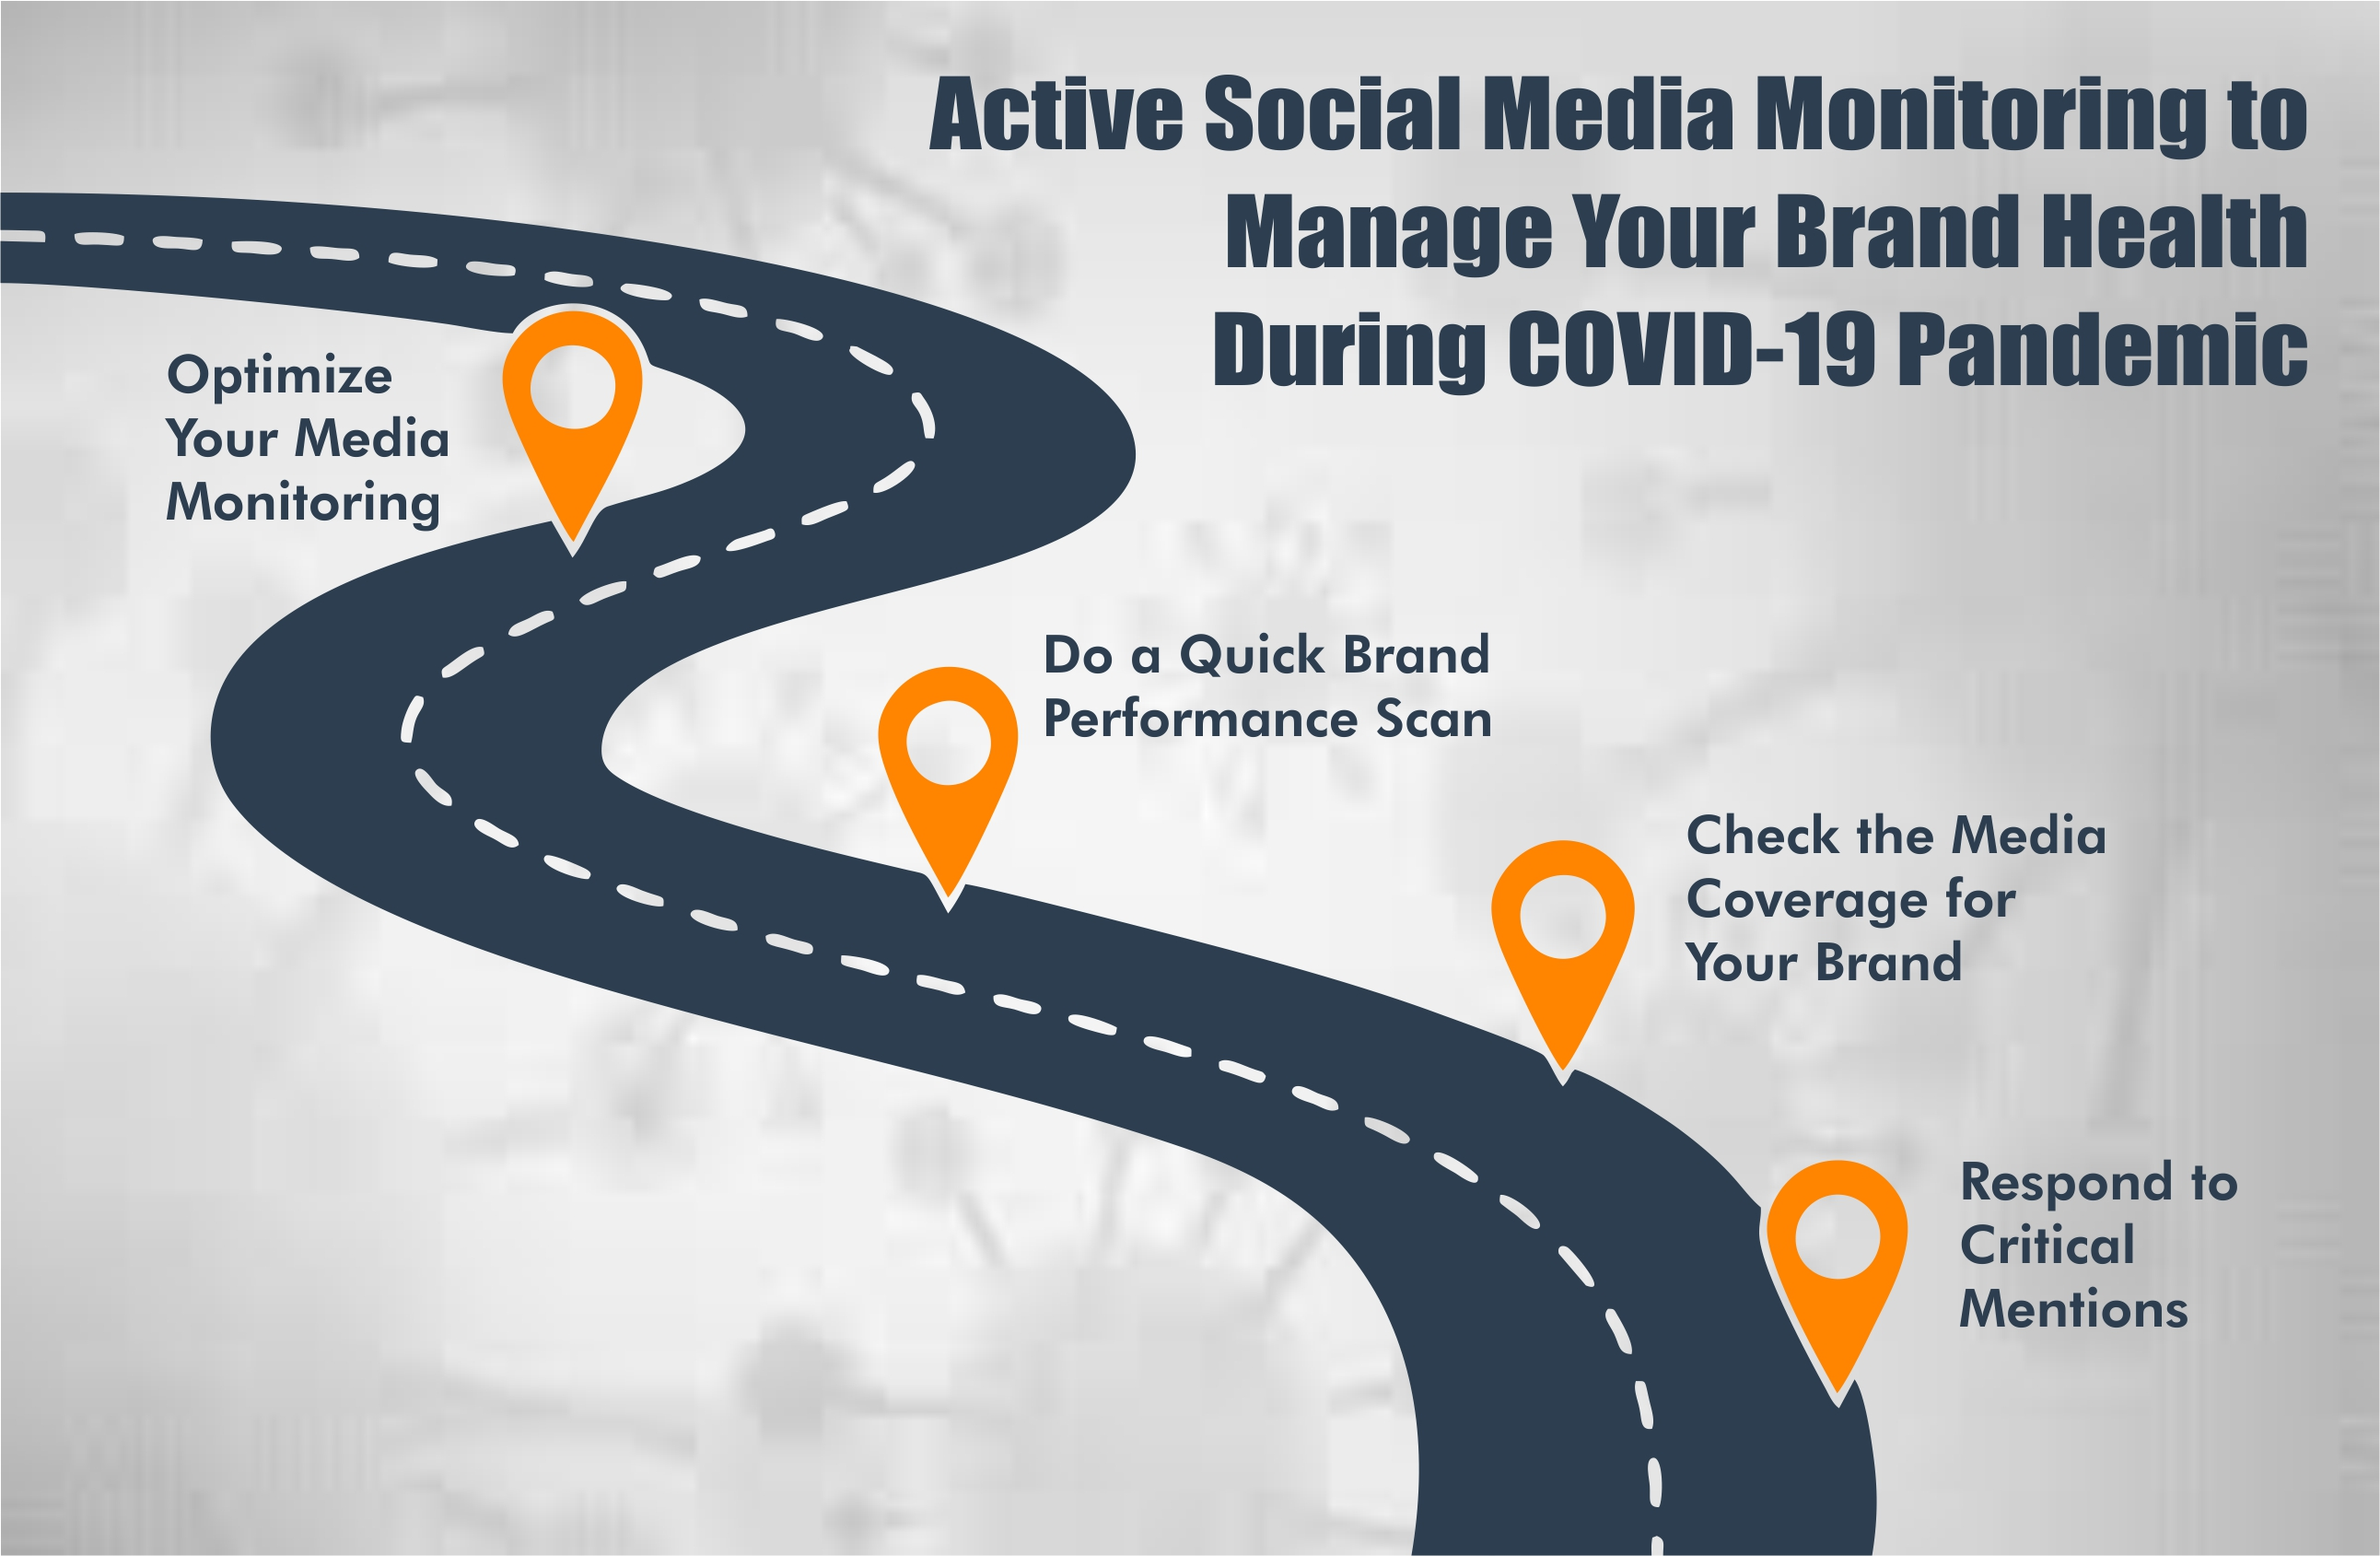 active-social-media-monitoring-to-manage-your-brand-health-during-covid-19-pandemic